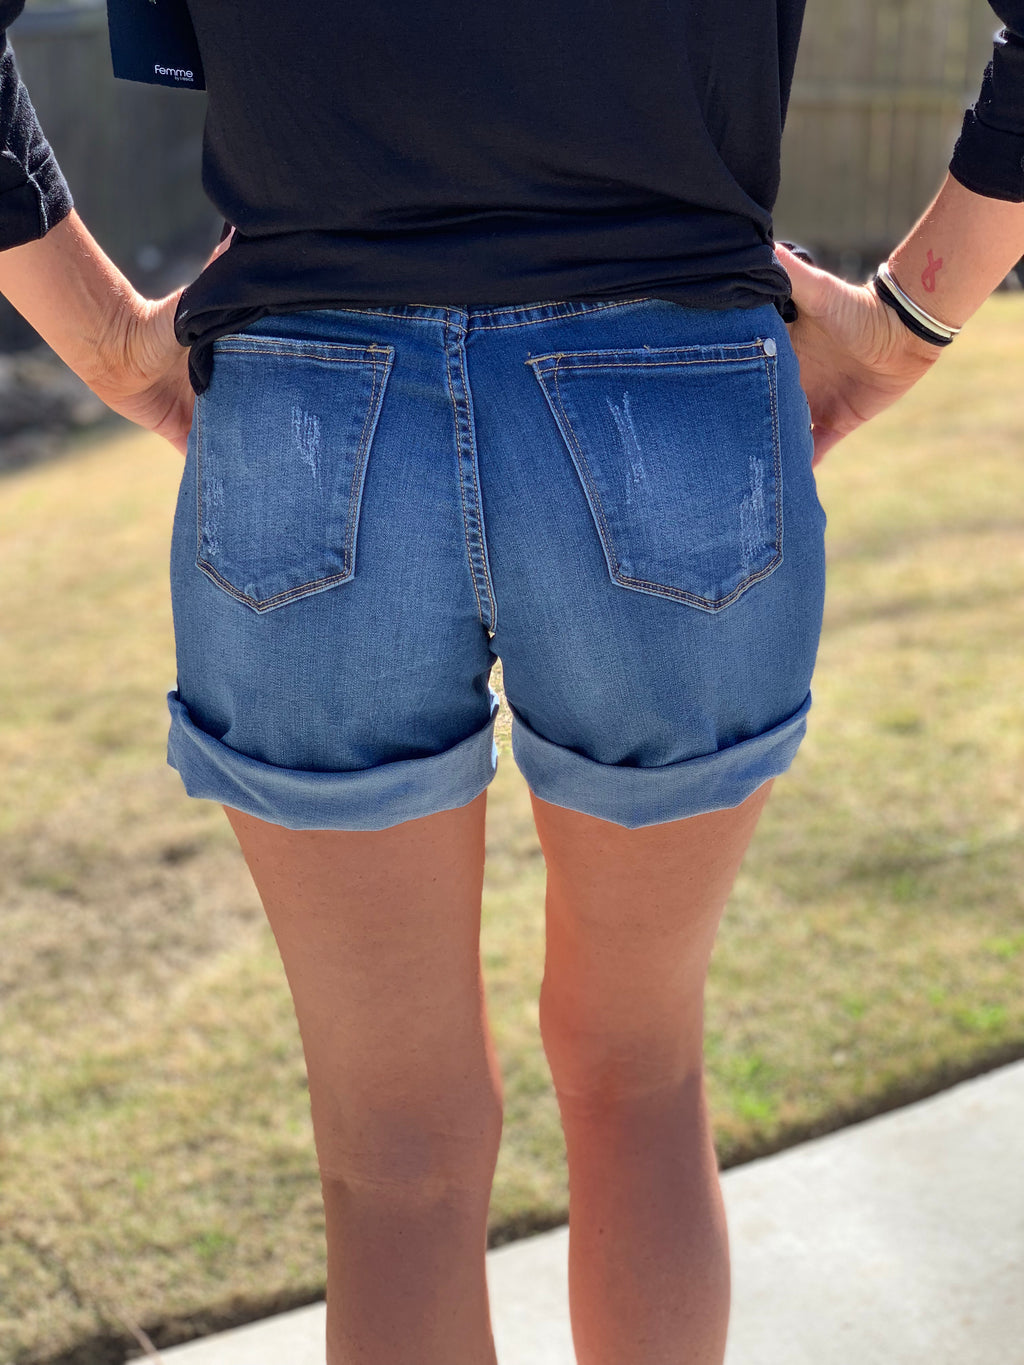 Sunny Days Shorts (Medium Wash)